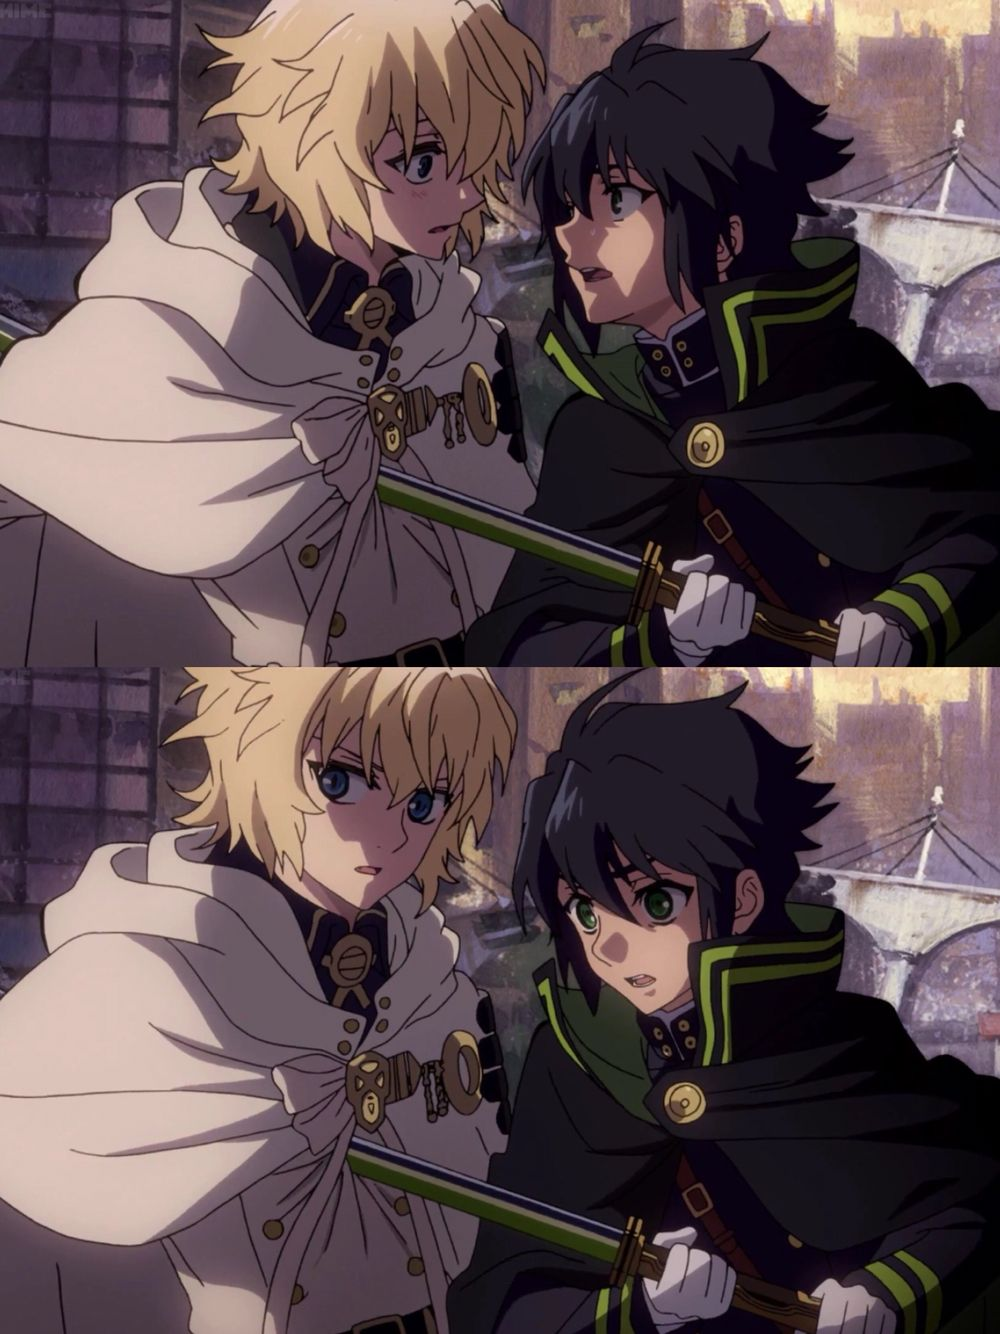 Seraph Of The End Stares Into Each Others Eyes After Being Apart For Four Years Fights Disbelief And Accepts The I Owari No Seraph Seraph Of The End Anime